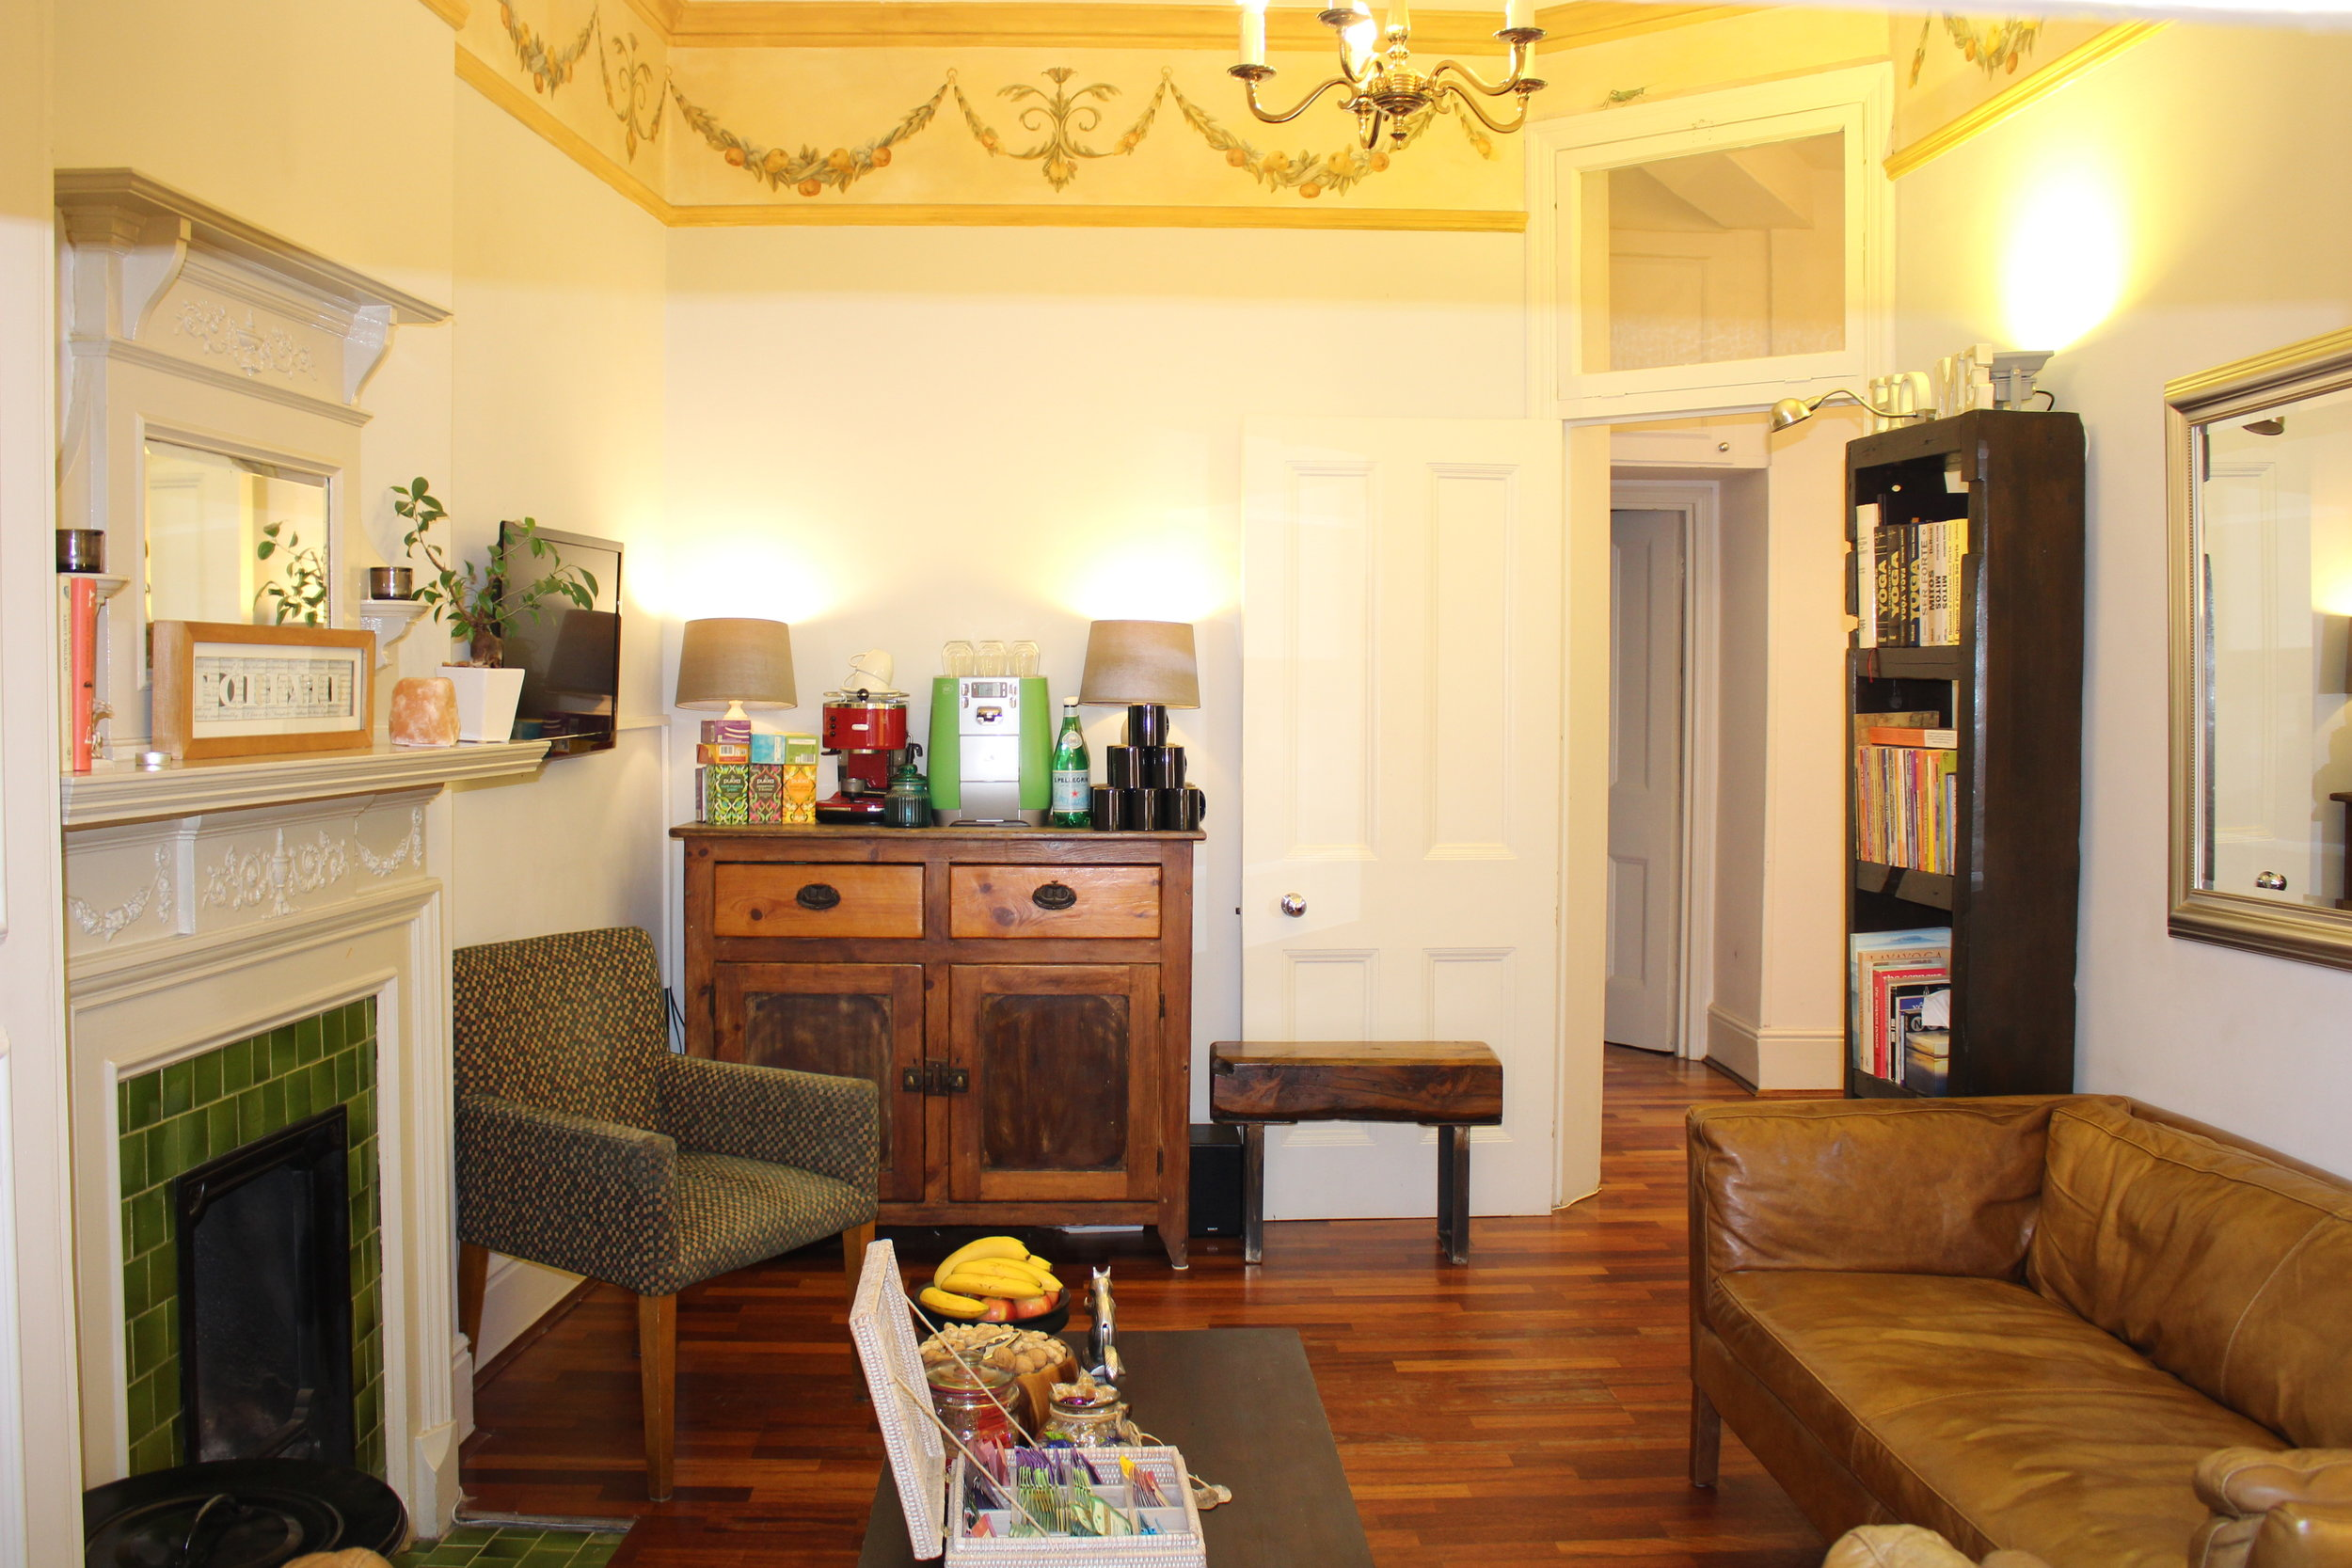 Enjoy our lounge area, books and a good chat over a cup of tea or chai